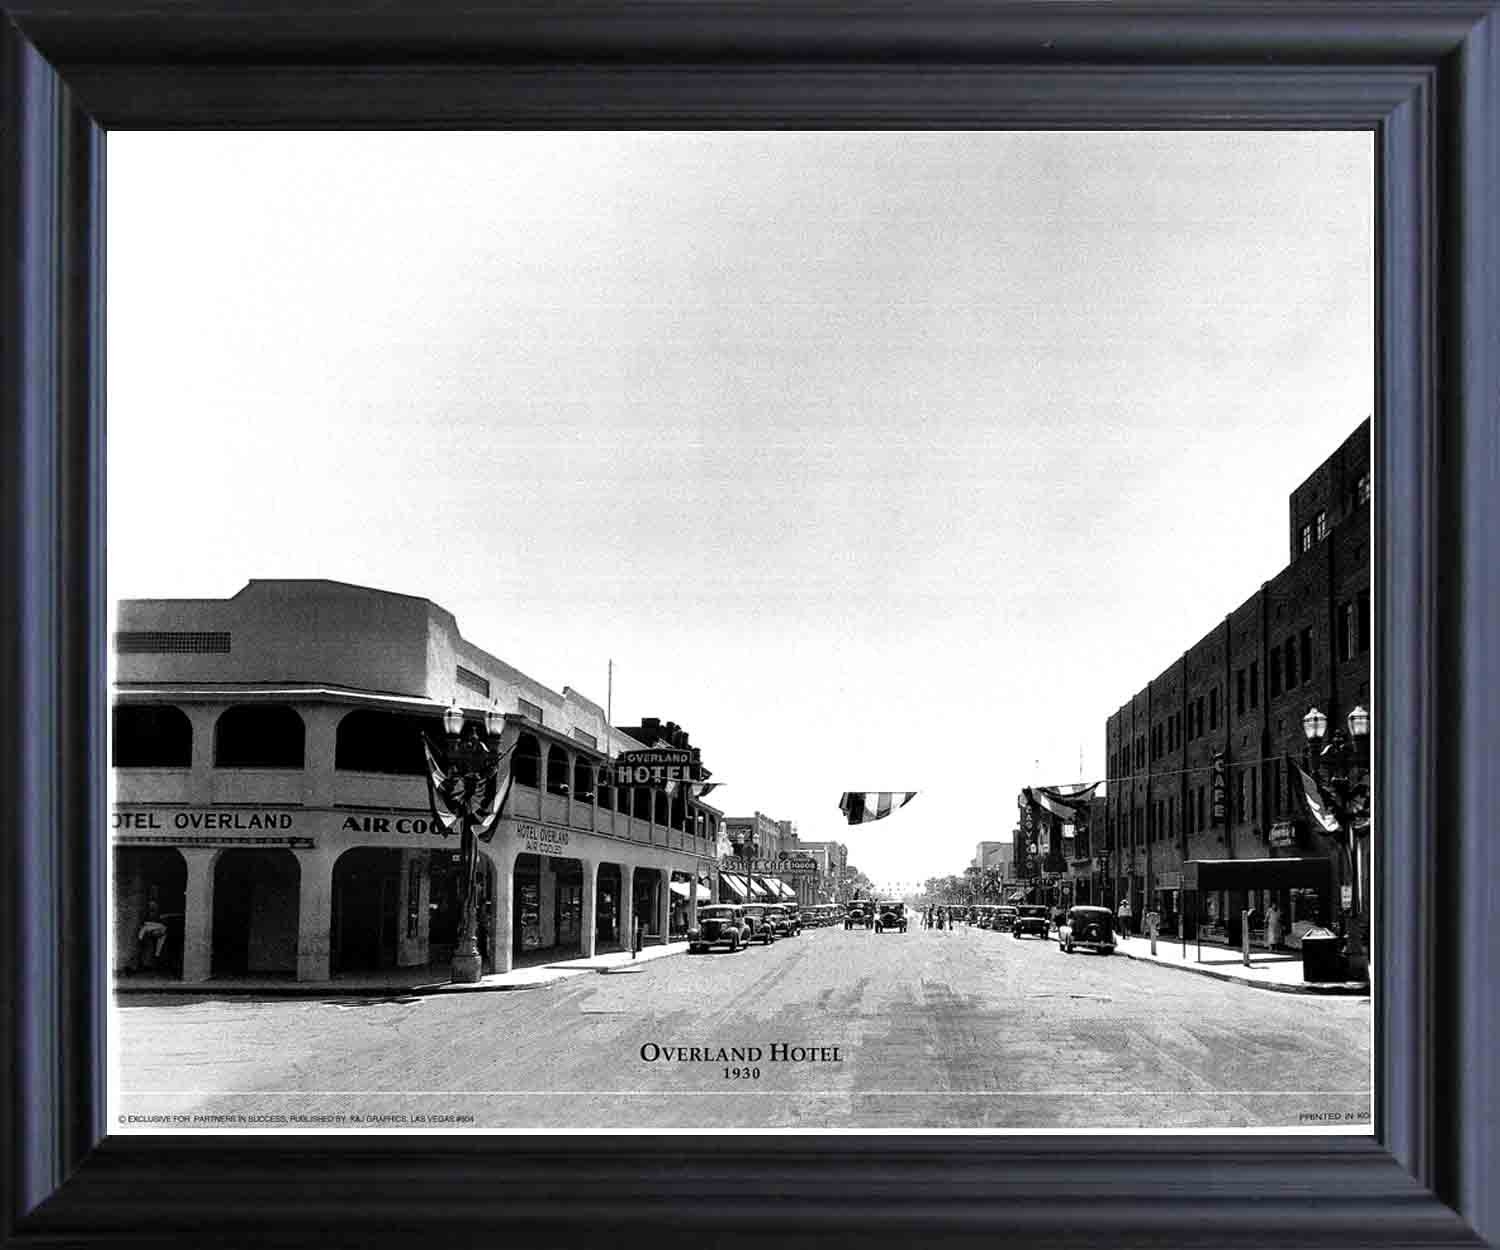 Impact Posters Gallery Las Vegas, Overland Hotel 1930 Vintage Motor Car Old City Black And White Black Framed Wall Decor Art Print Picture (19x23)